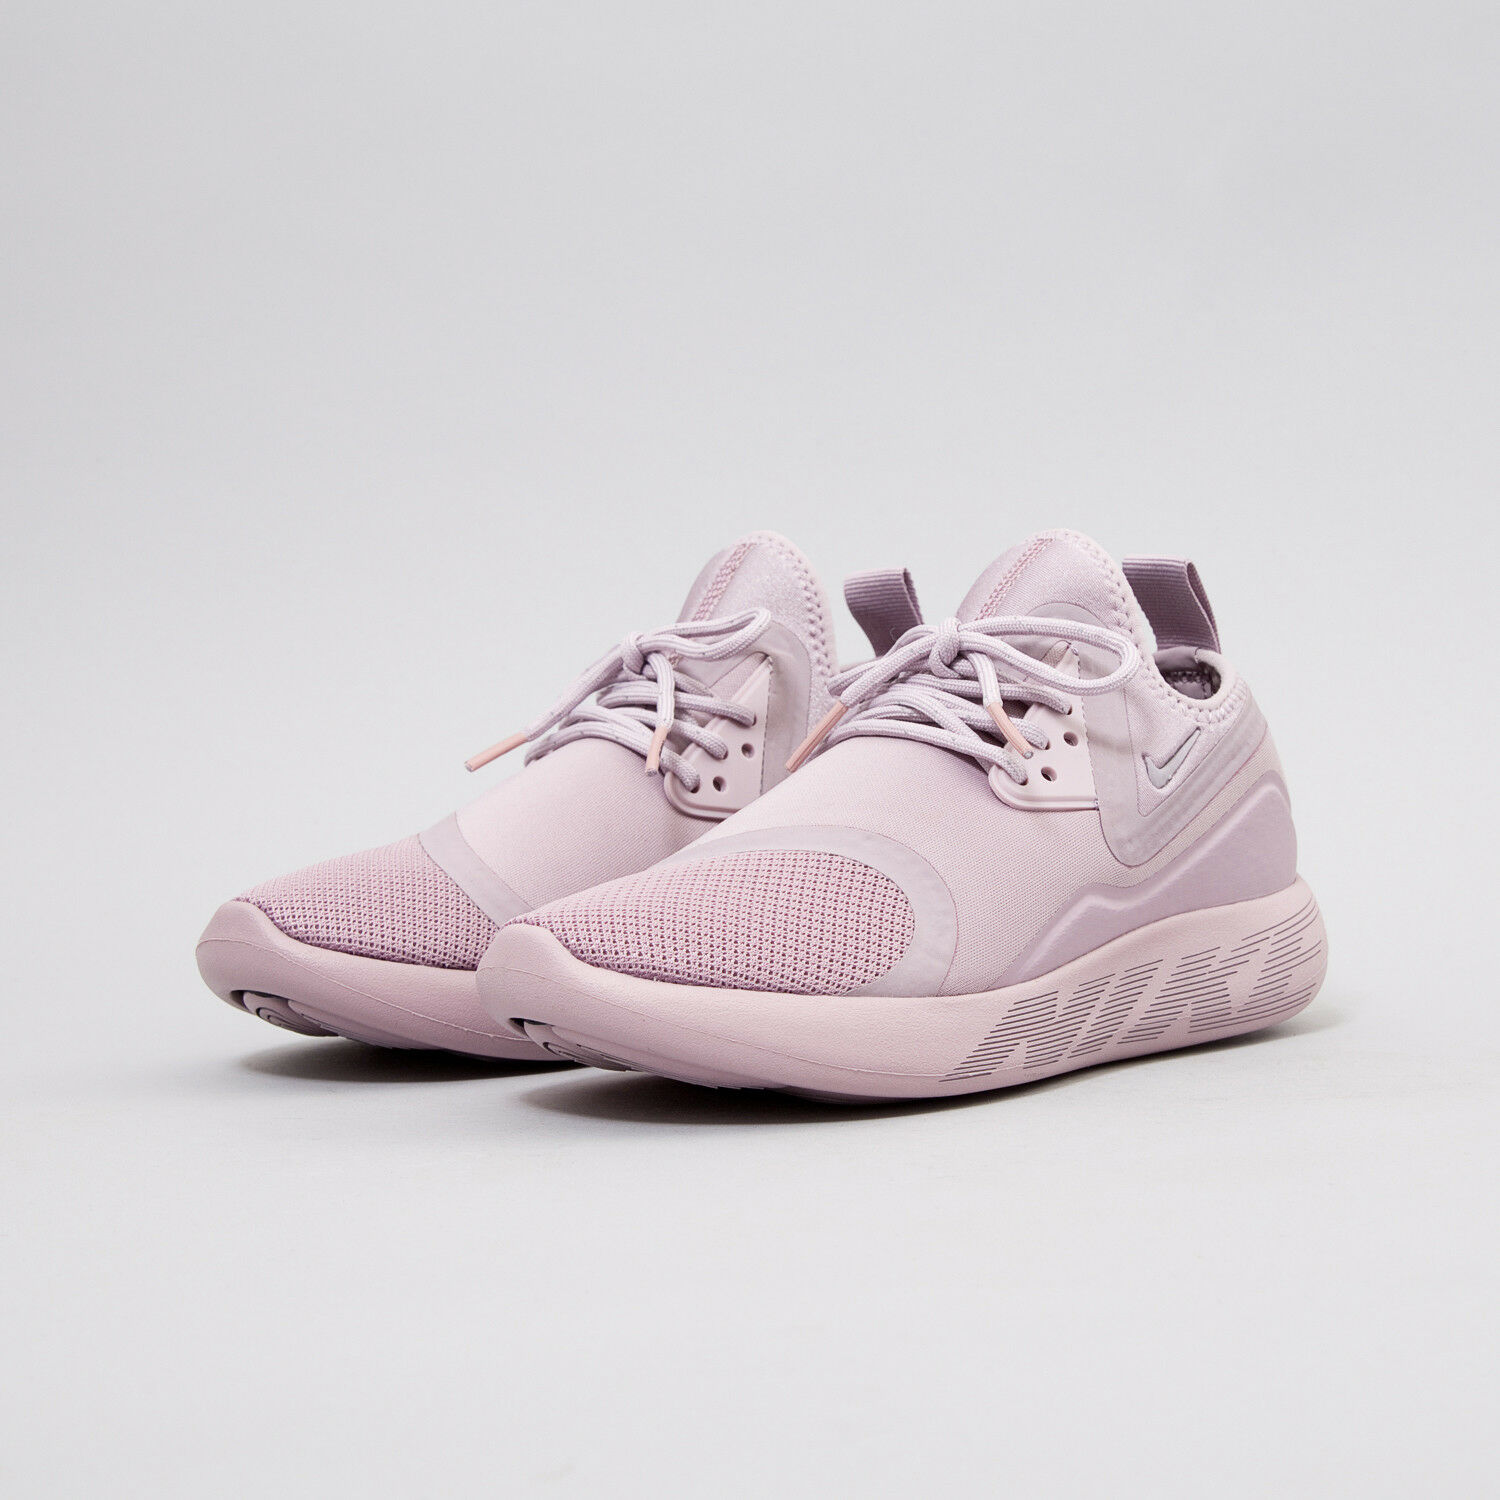 Nike Lunarcharge Essential Plum Fog Women's Running shoes [923620-501] Size 7.5